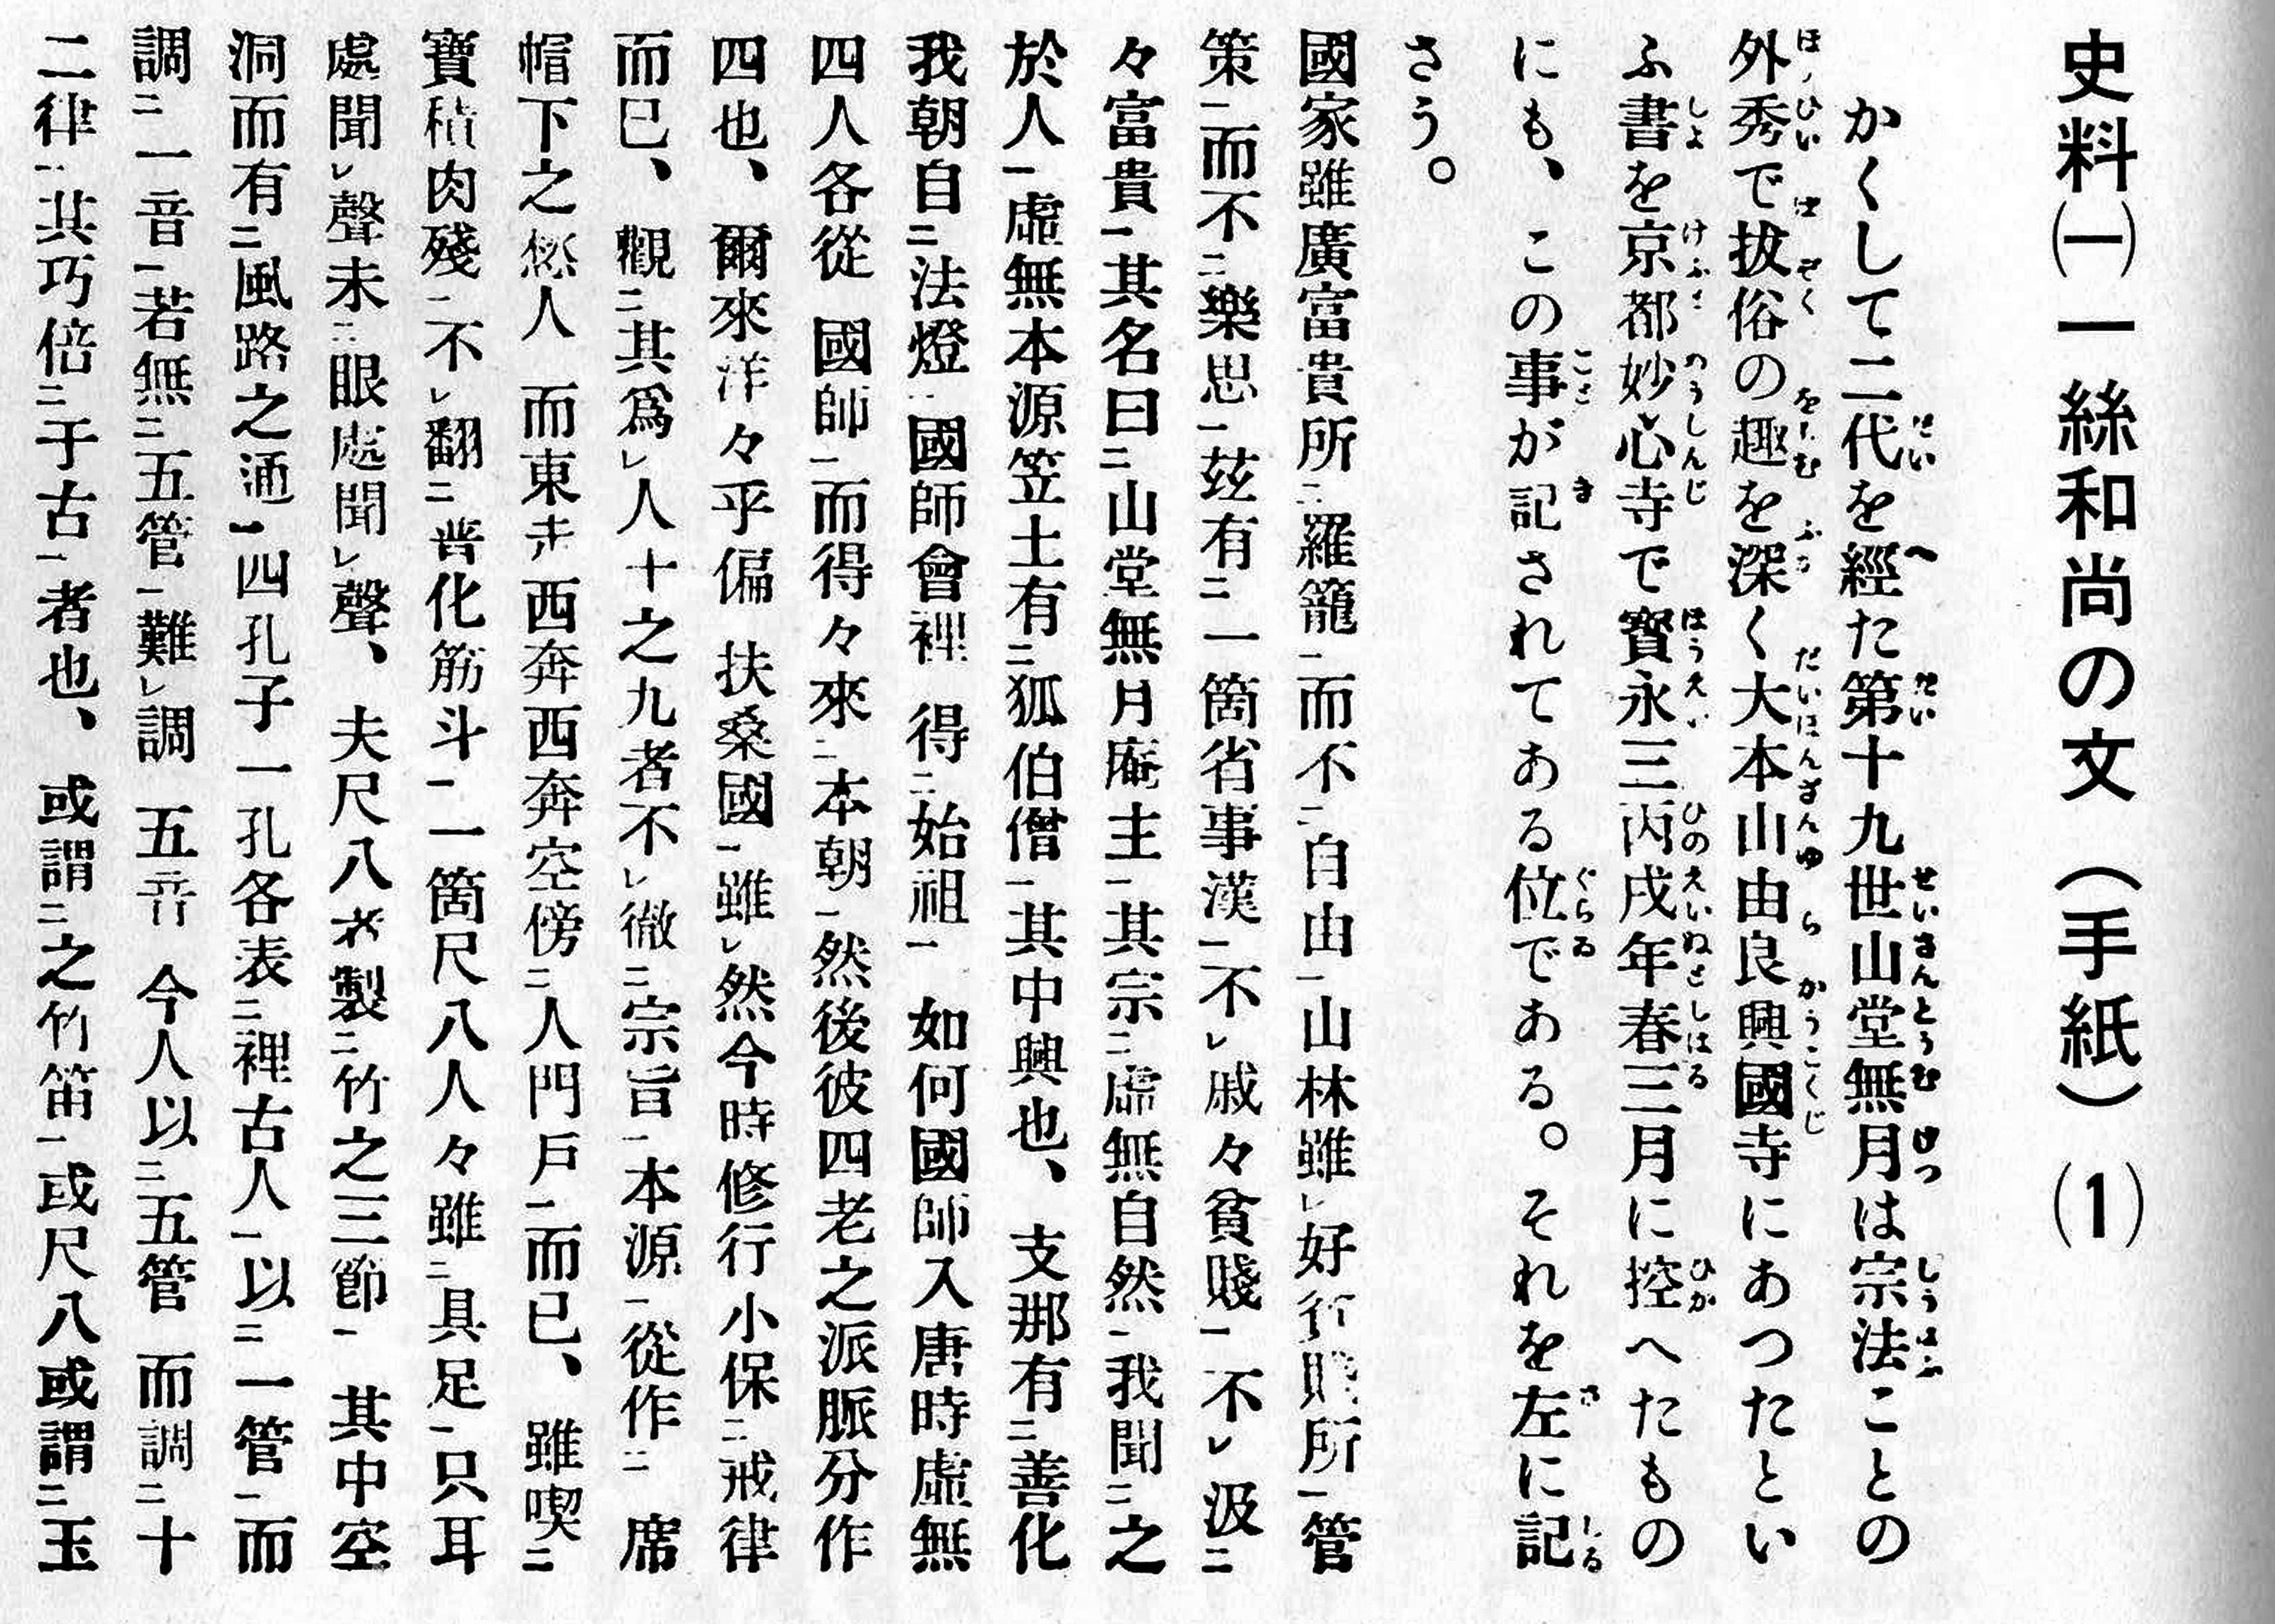 Kowata Suigetsu's 1981 version of Isshi's Bunshu's Letter, top